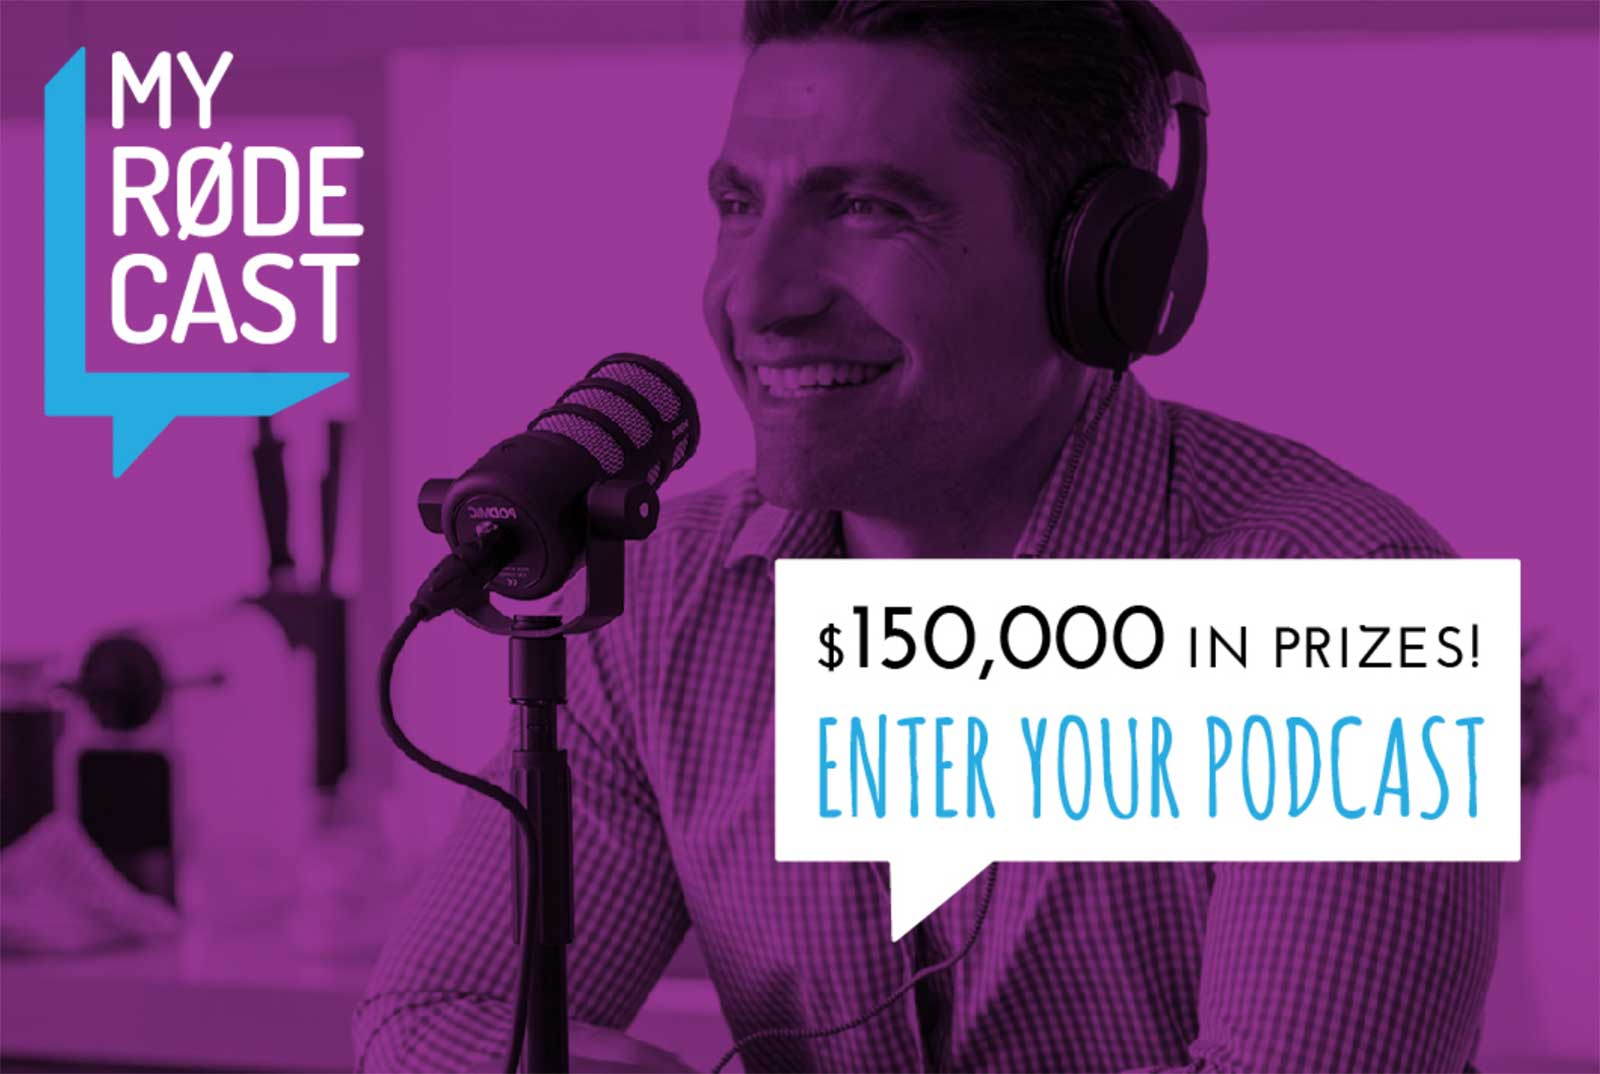 Enter the RØDE Microphones 'MY RØDE CAST' Podcasting Competition and Win!